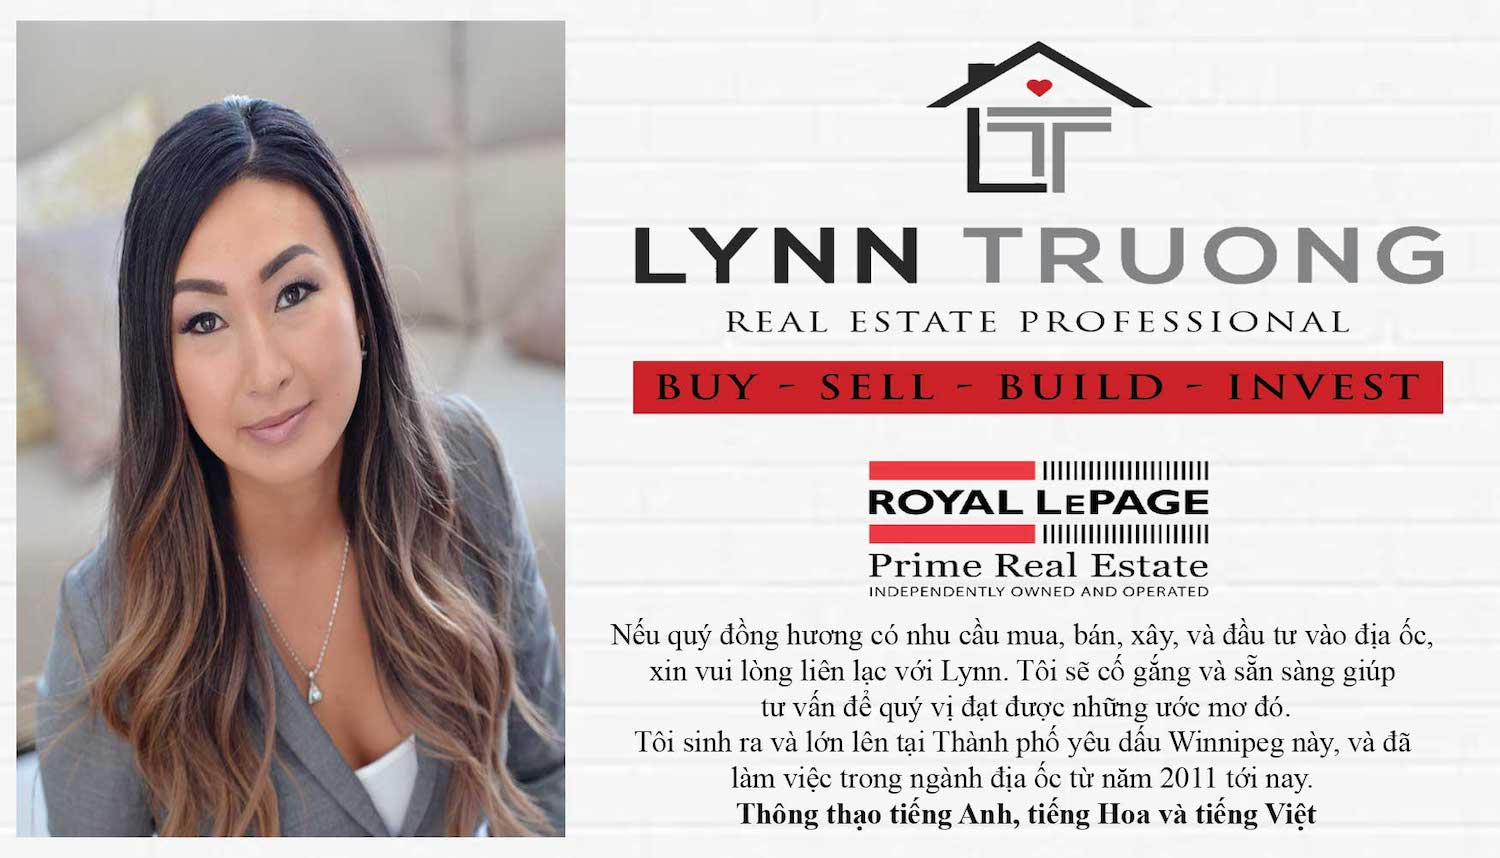 LYNN TRUONG REAL ESTATE PROFESSIONAL